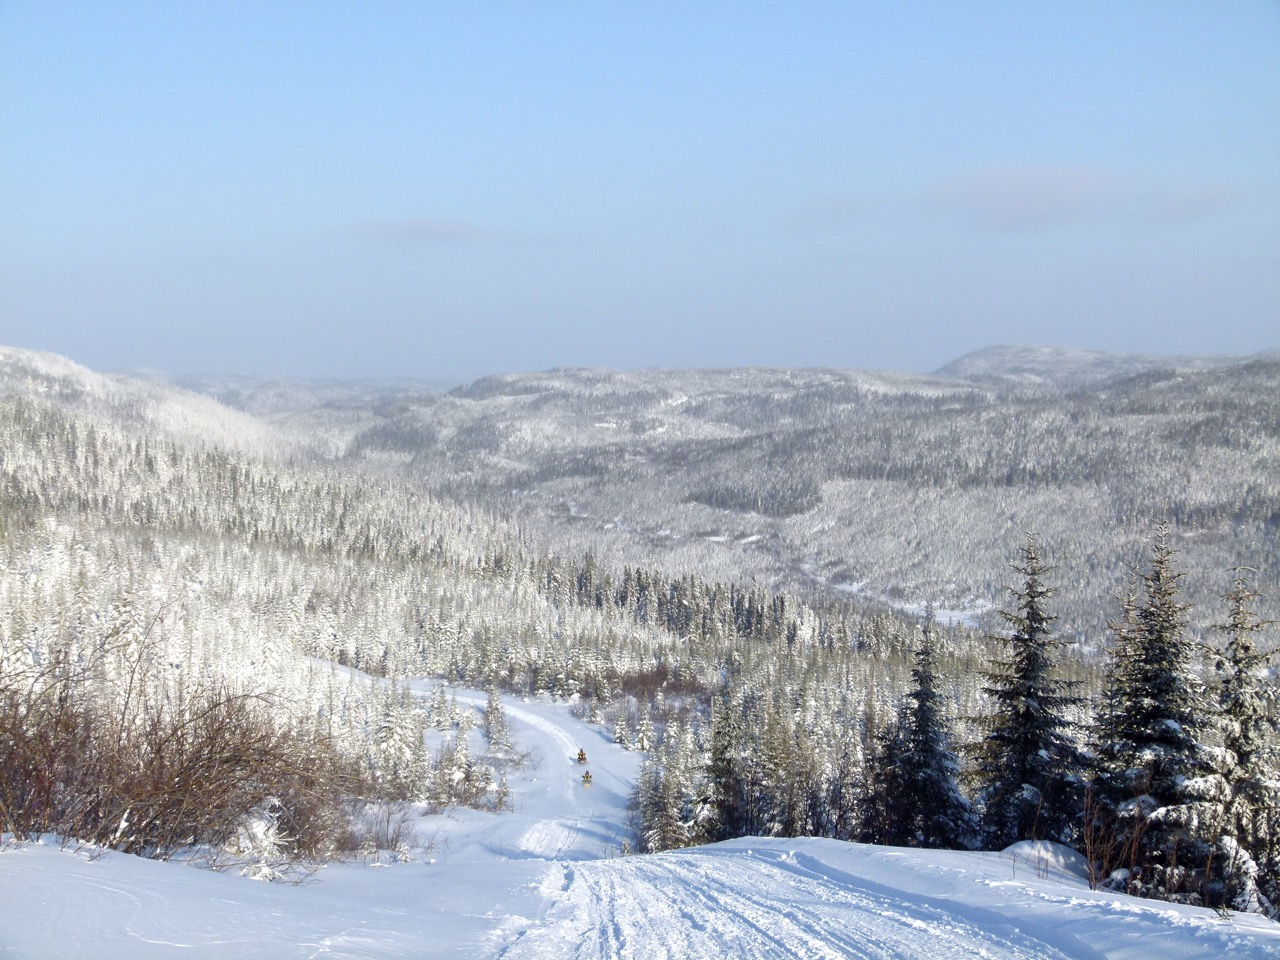 Staying warm while snowmobiling enables you to enjoy sights like this!